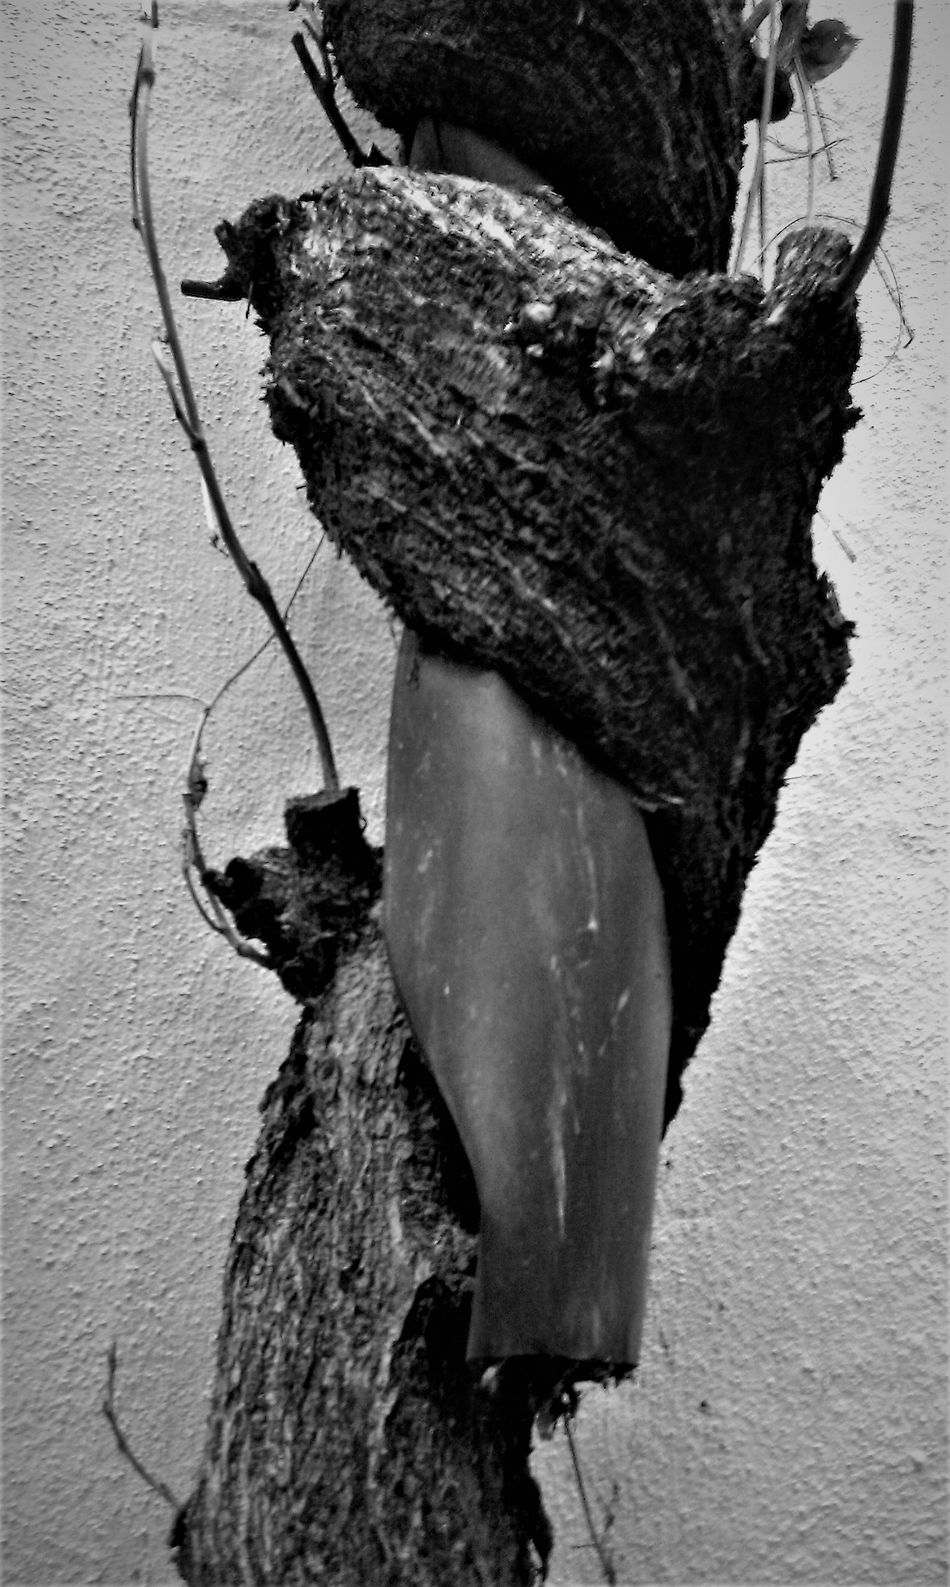 Black & White Blackandwhite Close-up Creeper Plant Day Nature No People Outdoors Power In Nature Twiner Winder Pipe - Tube Pipe